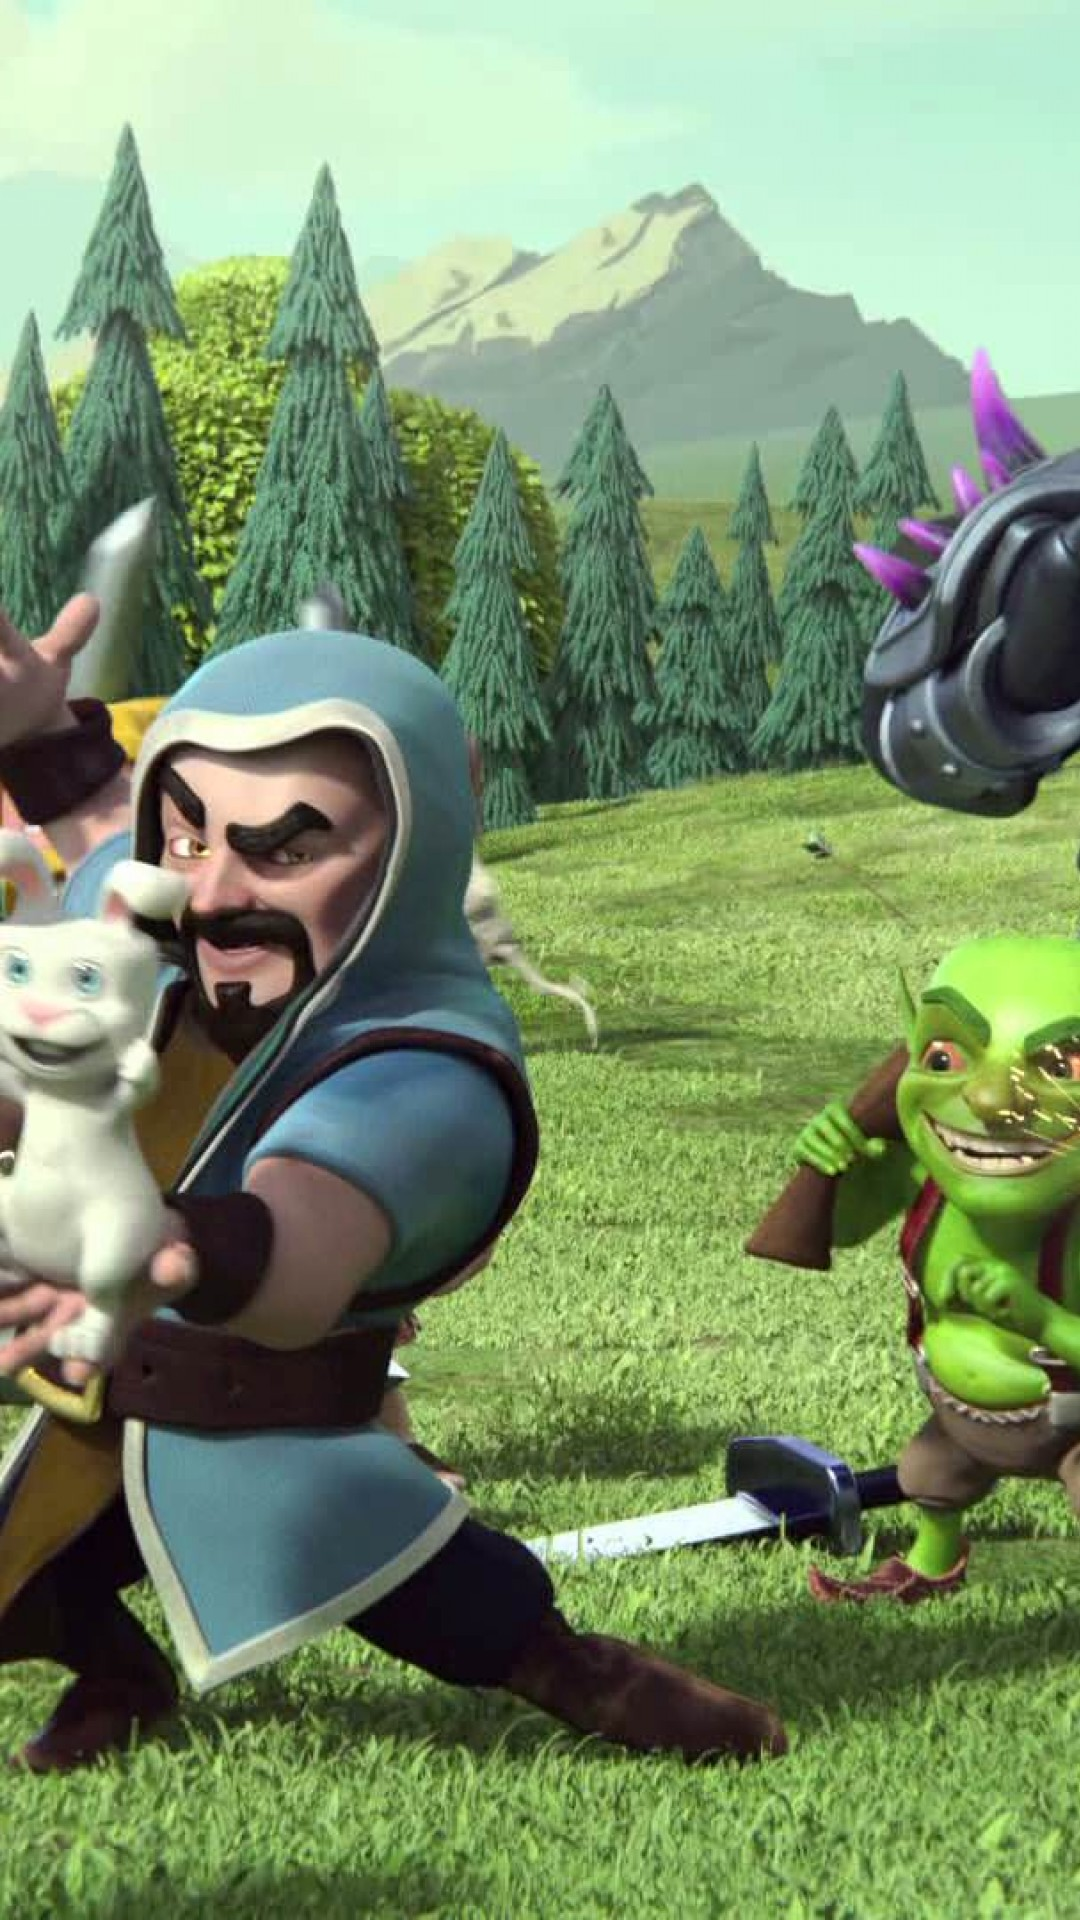 Clash Of Clans Wizard Hd Wallpaper For Desktop And Mobiles Iphone